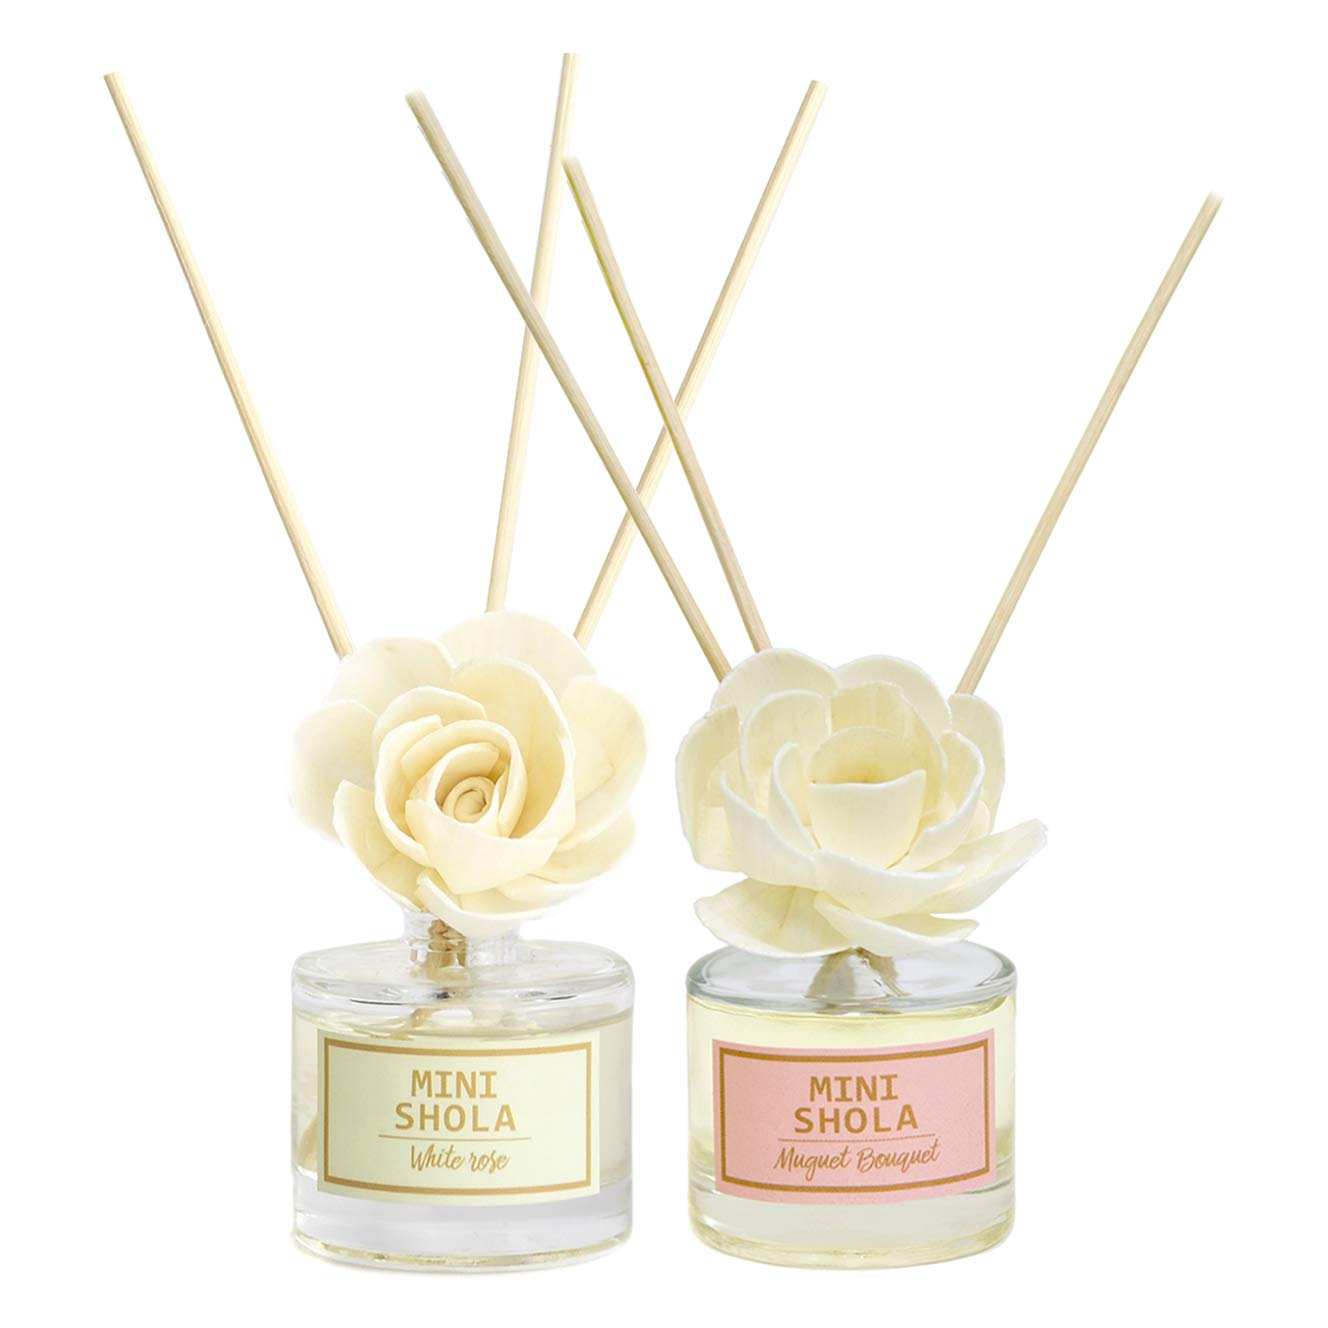 Aronica Mini Floral Diffuser 2 Pack Set - Sola Flower White Rose (40ml) + Muguet (40ml) by Aronica (Image #1)